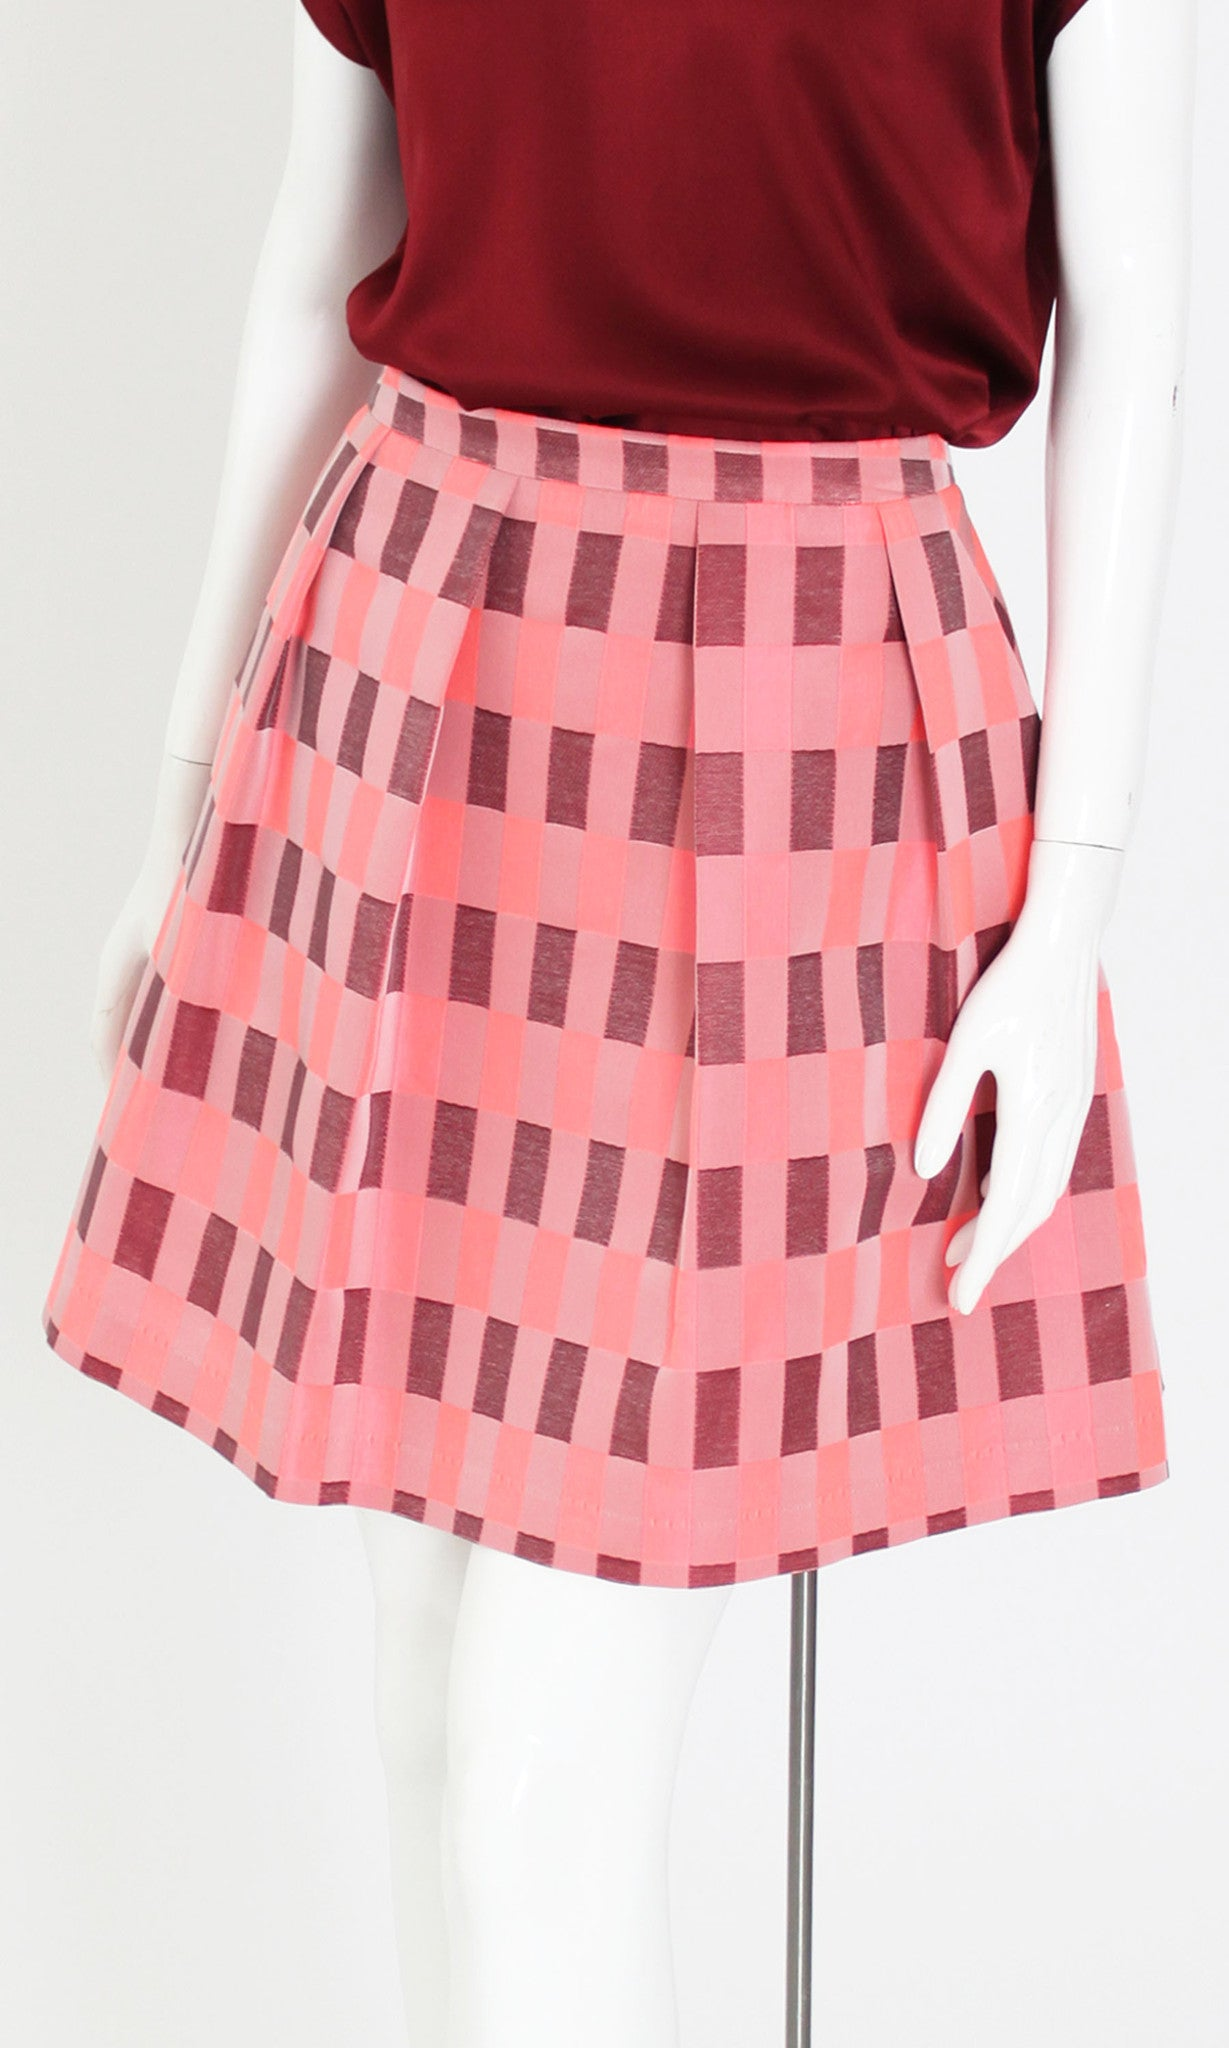 KAT CHECK PLEATED SKIRT